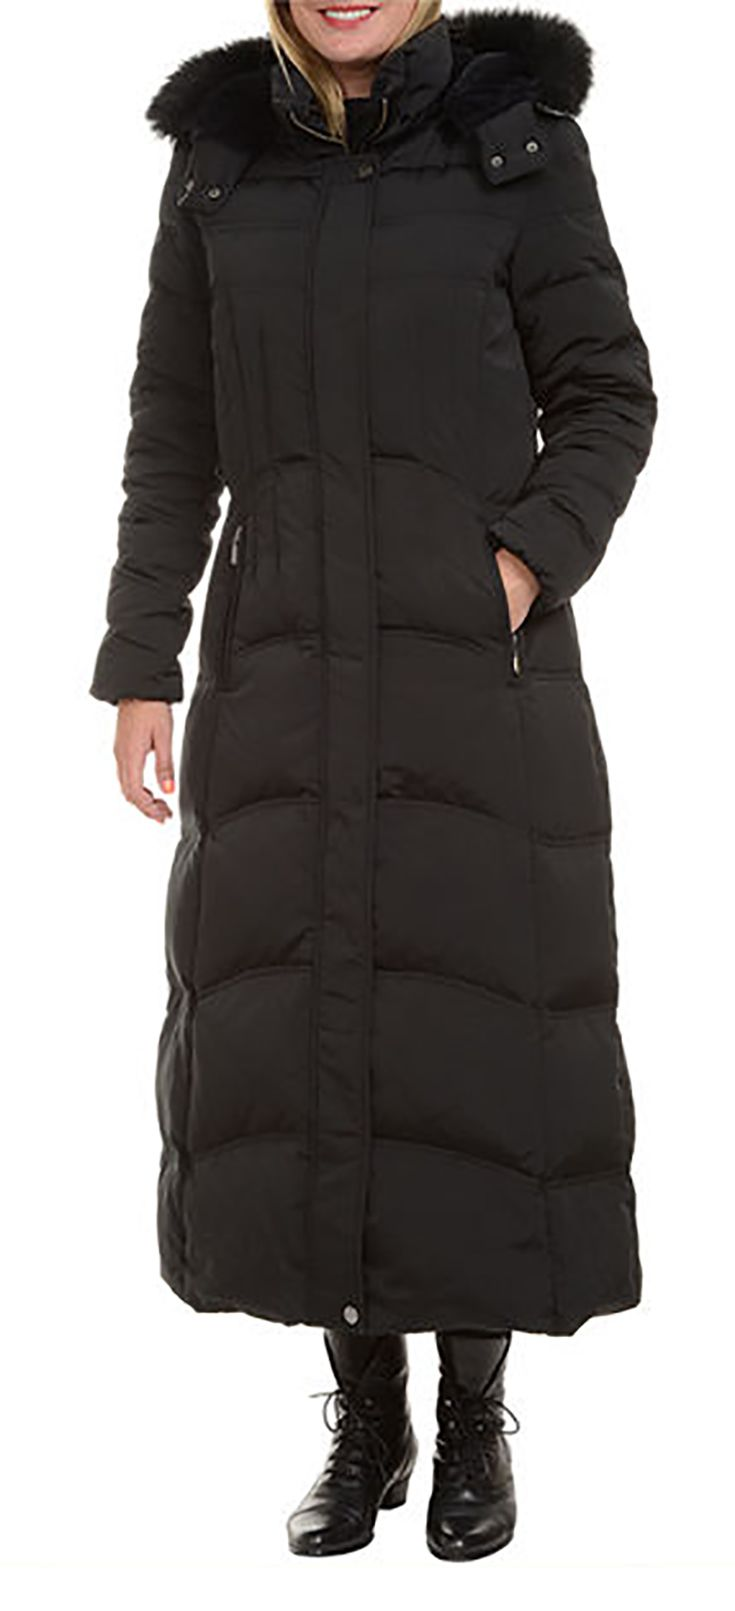 1d68964f6b3 1 Madison Ladies' Maxi Down Coat-Black | Costco Fashion in 2019 ...